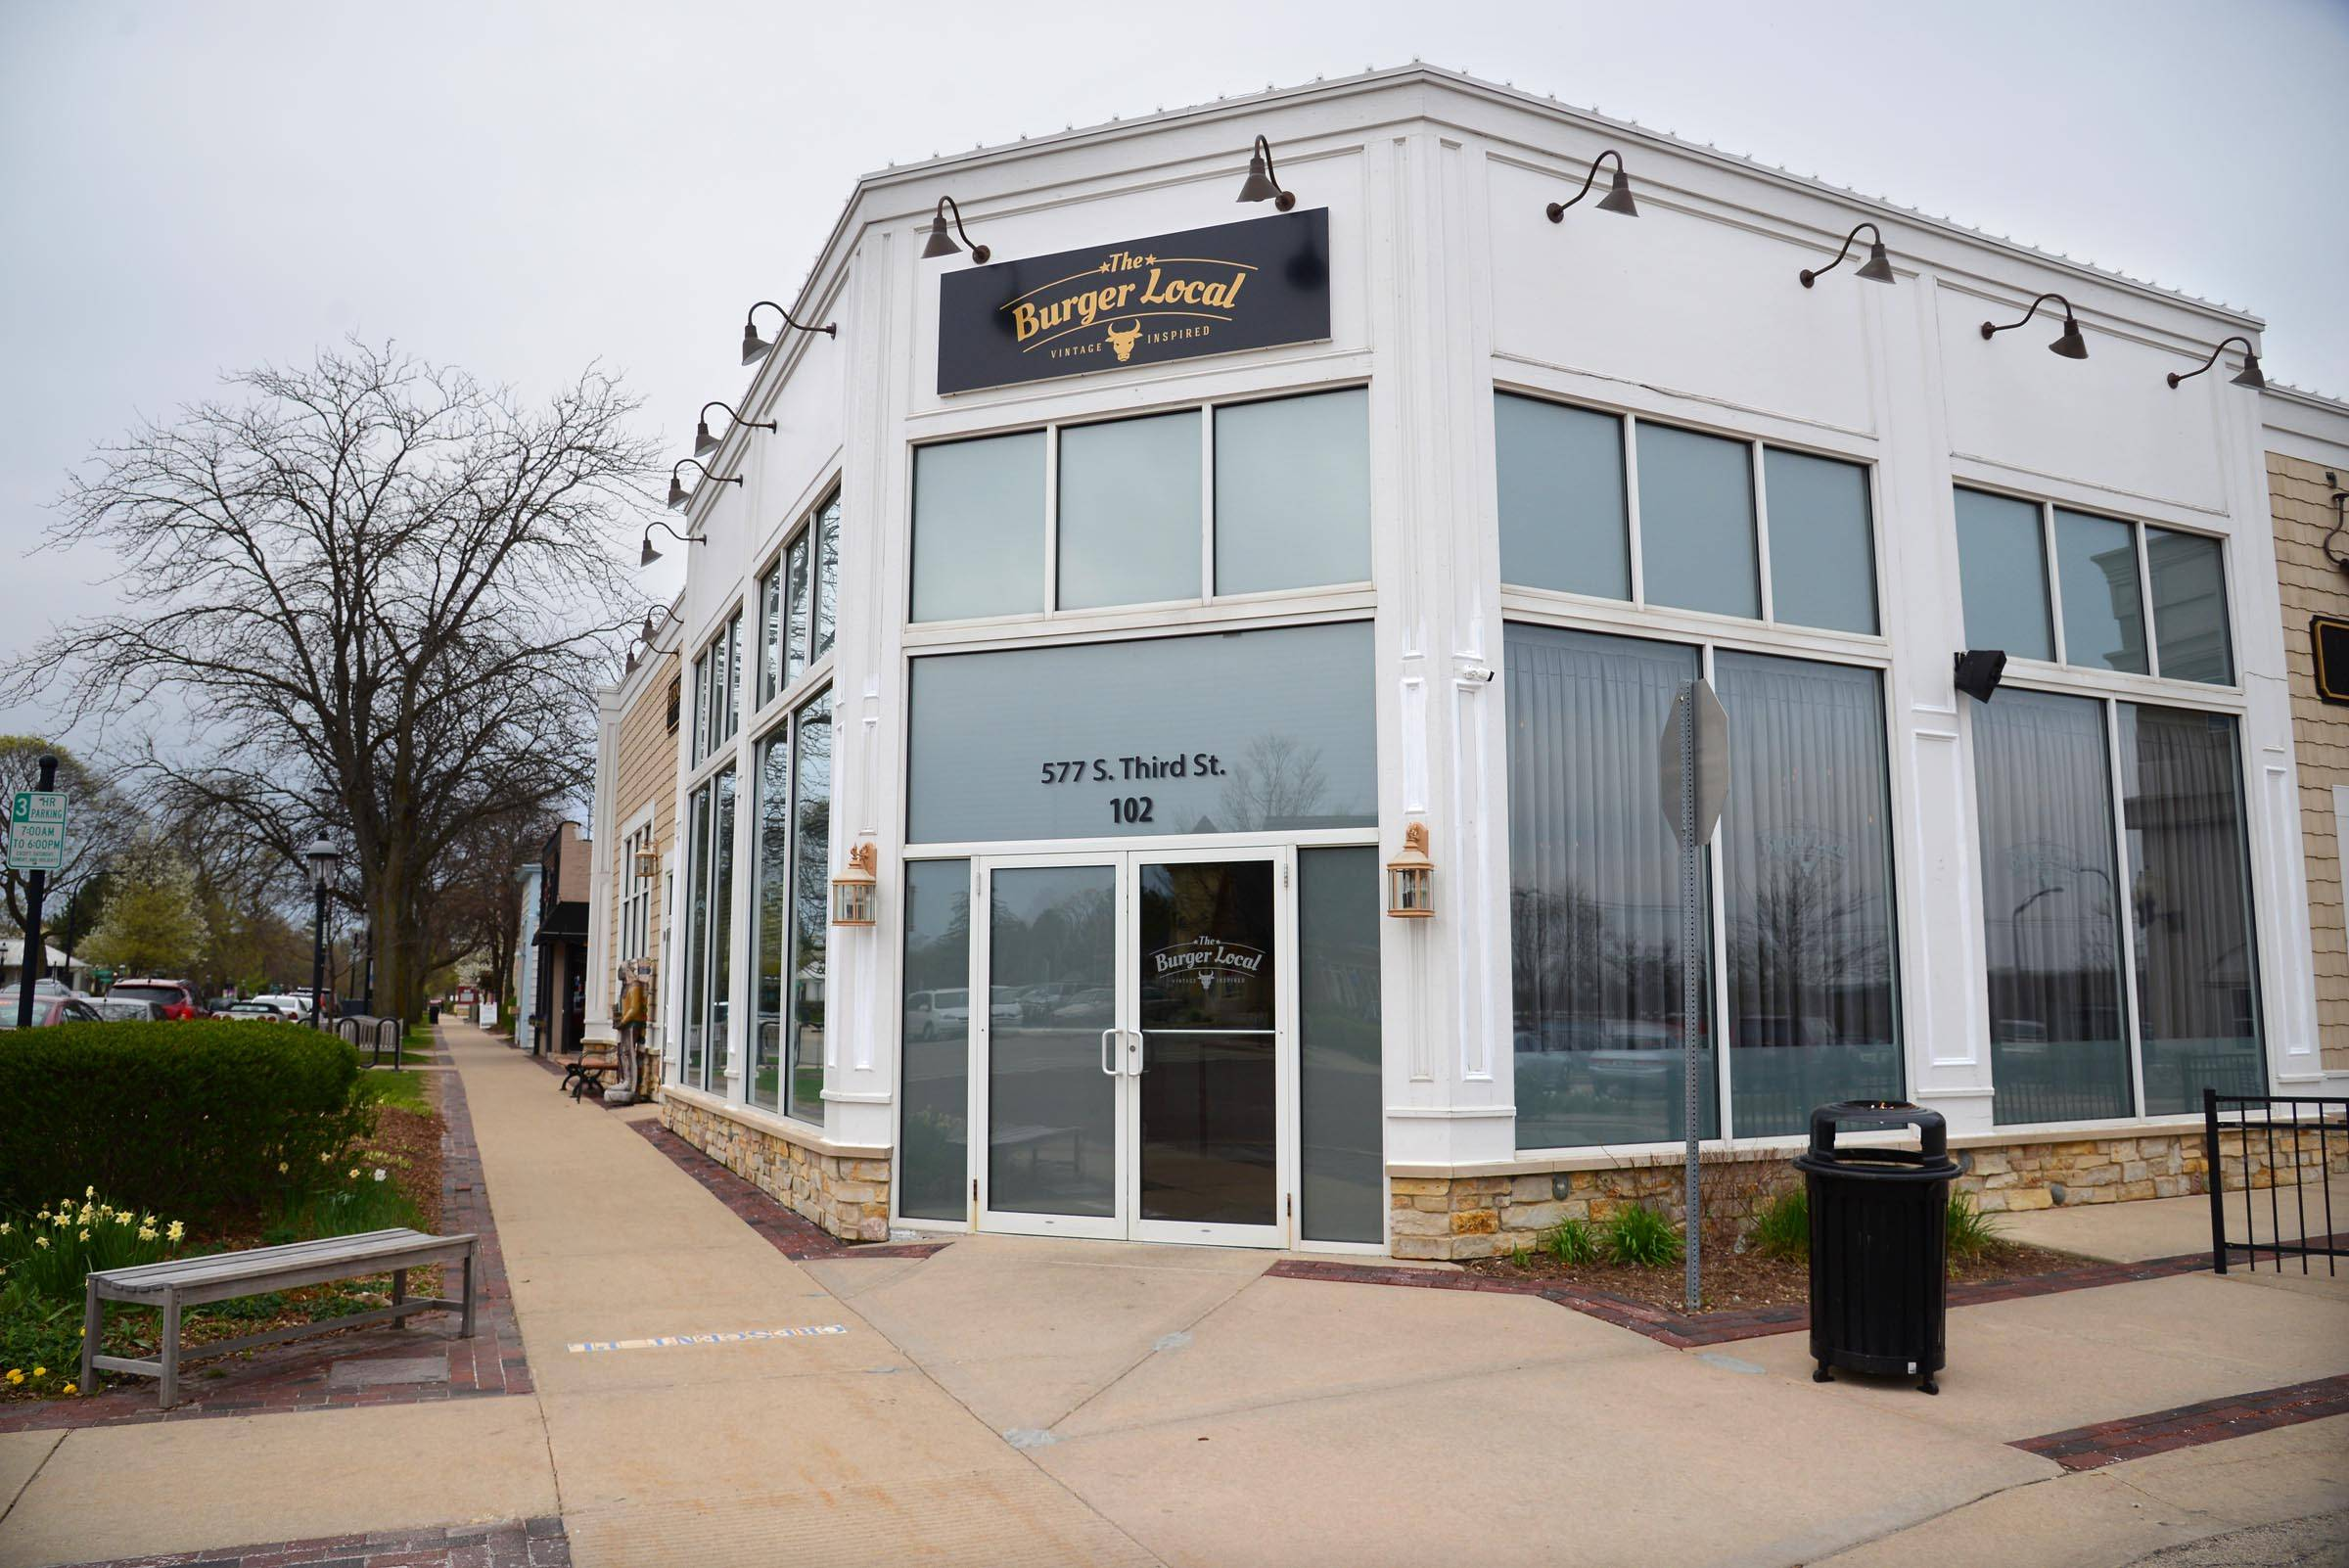 Another version of The Burger Local, shown here in Geneva, may soon be opening in downtown Wheaton.